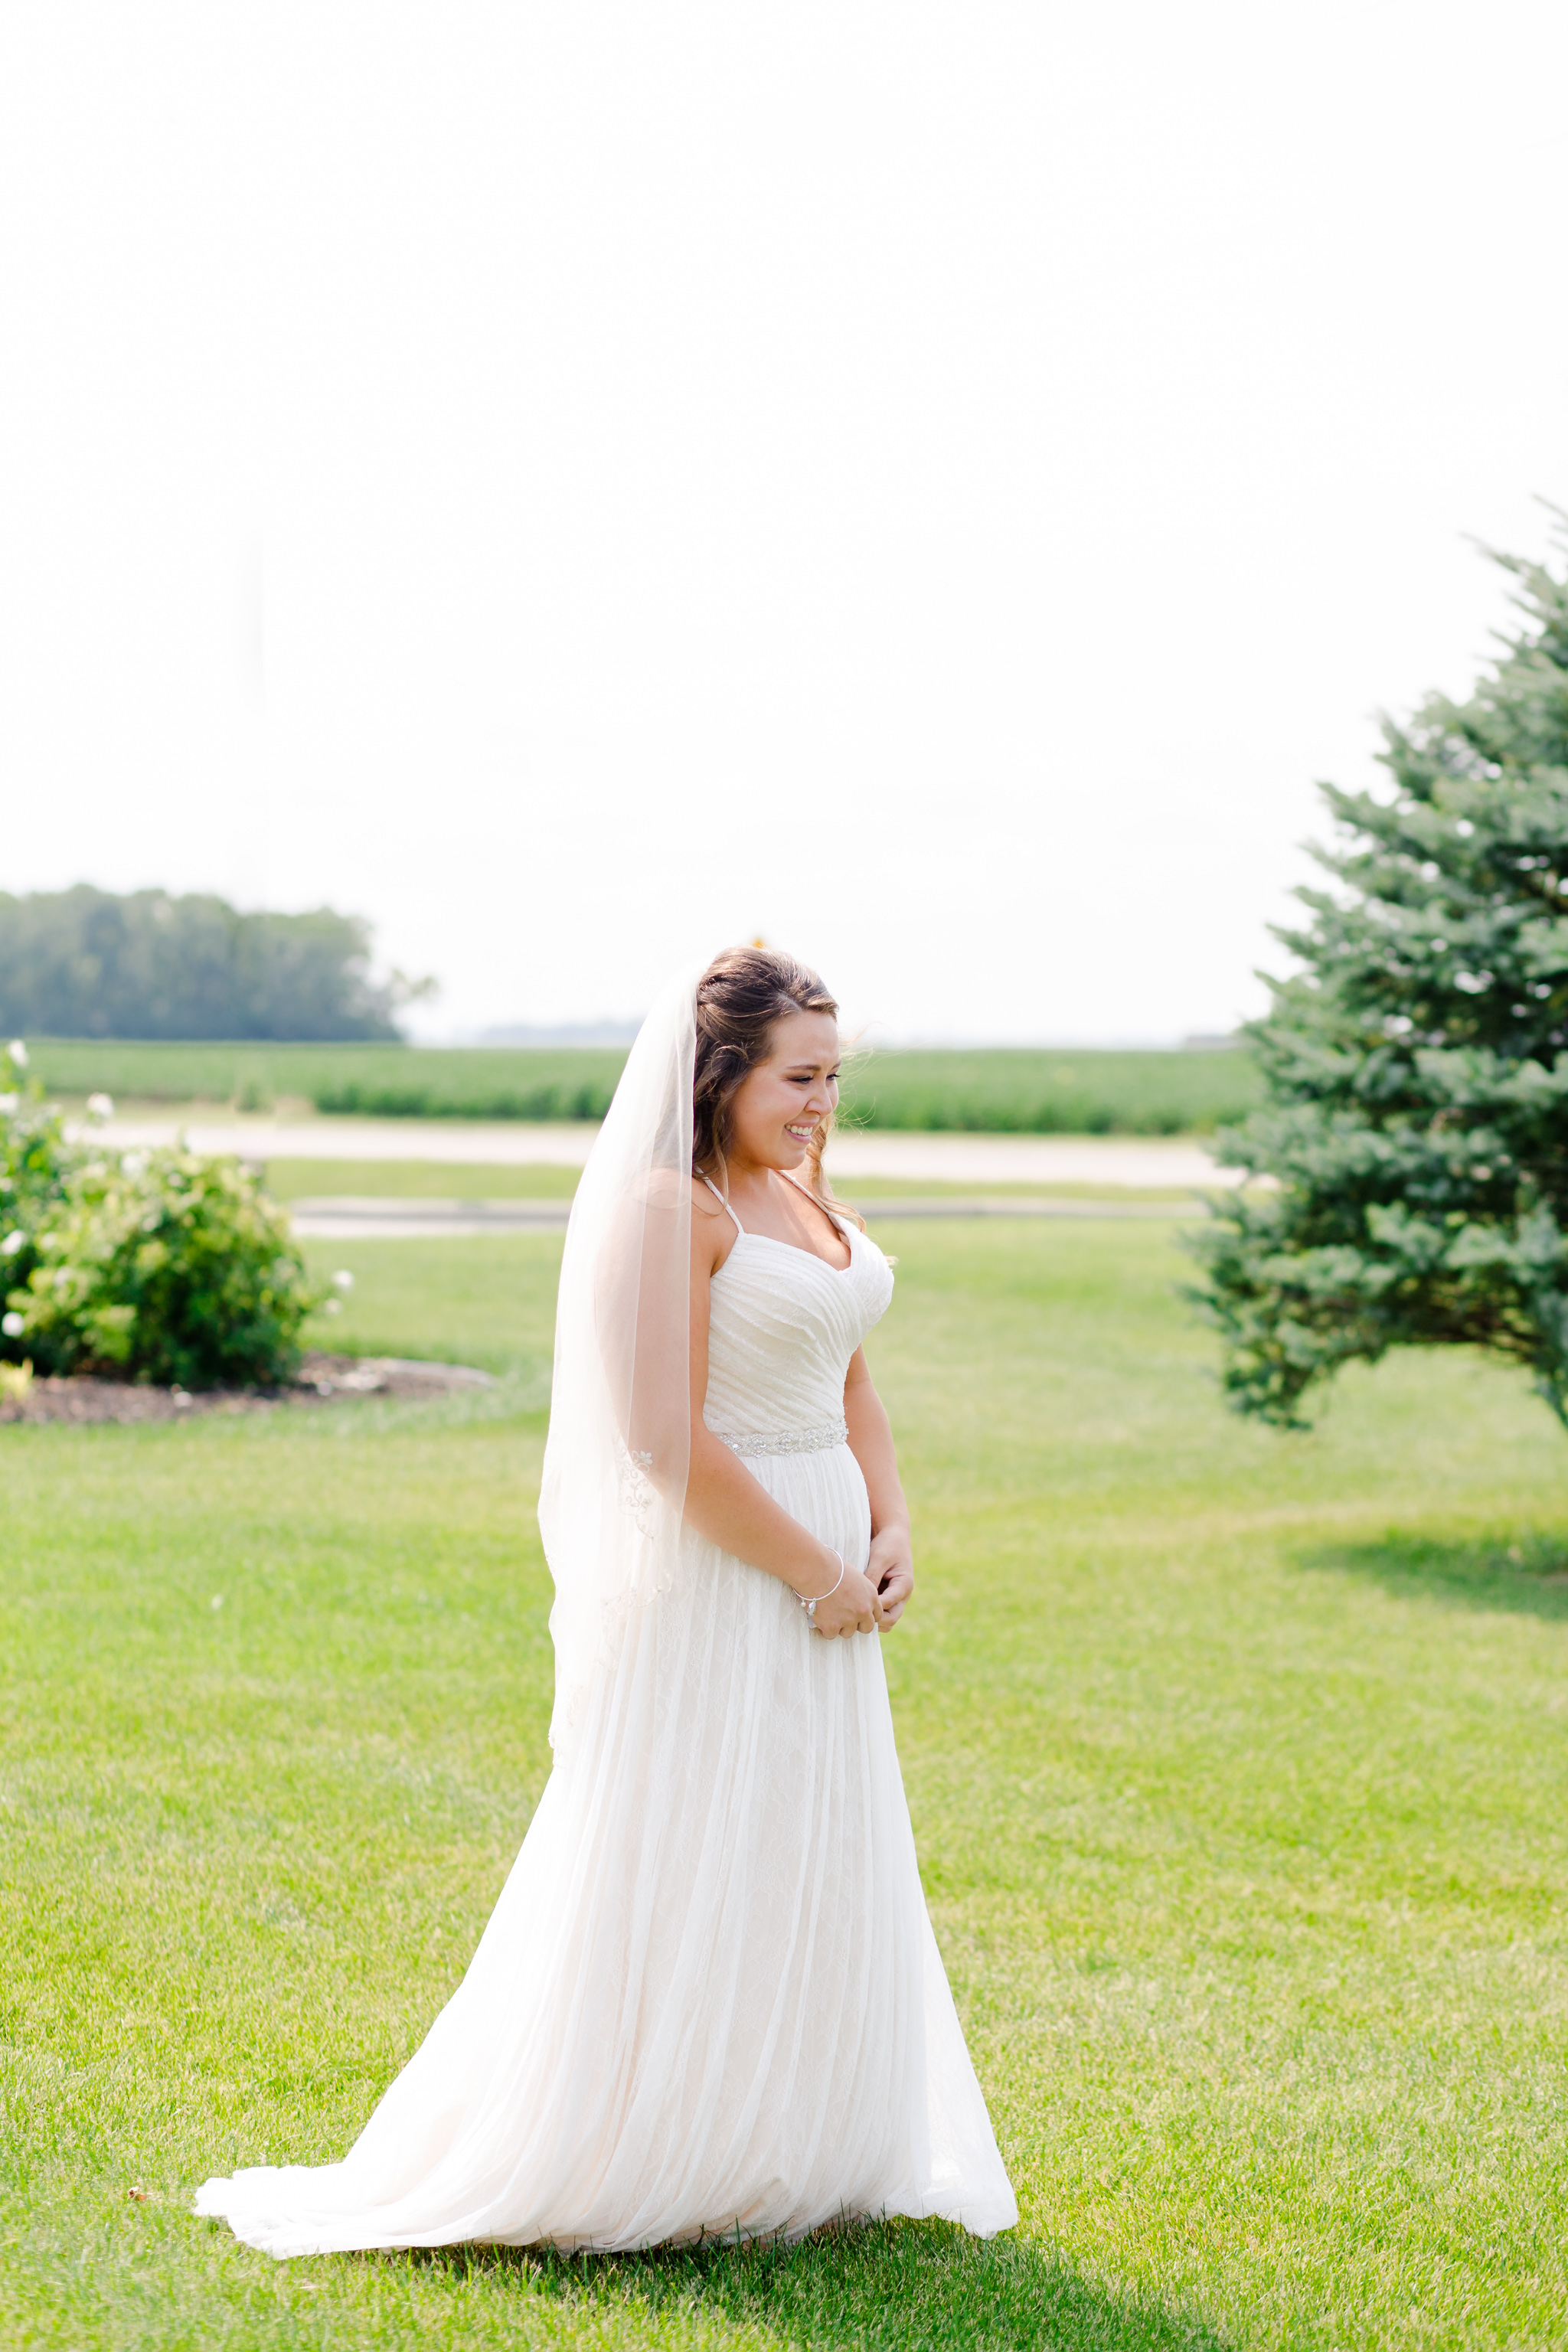 Fargo Wedding Photography by Chelsea Joy Photography